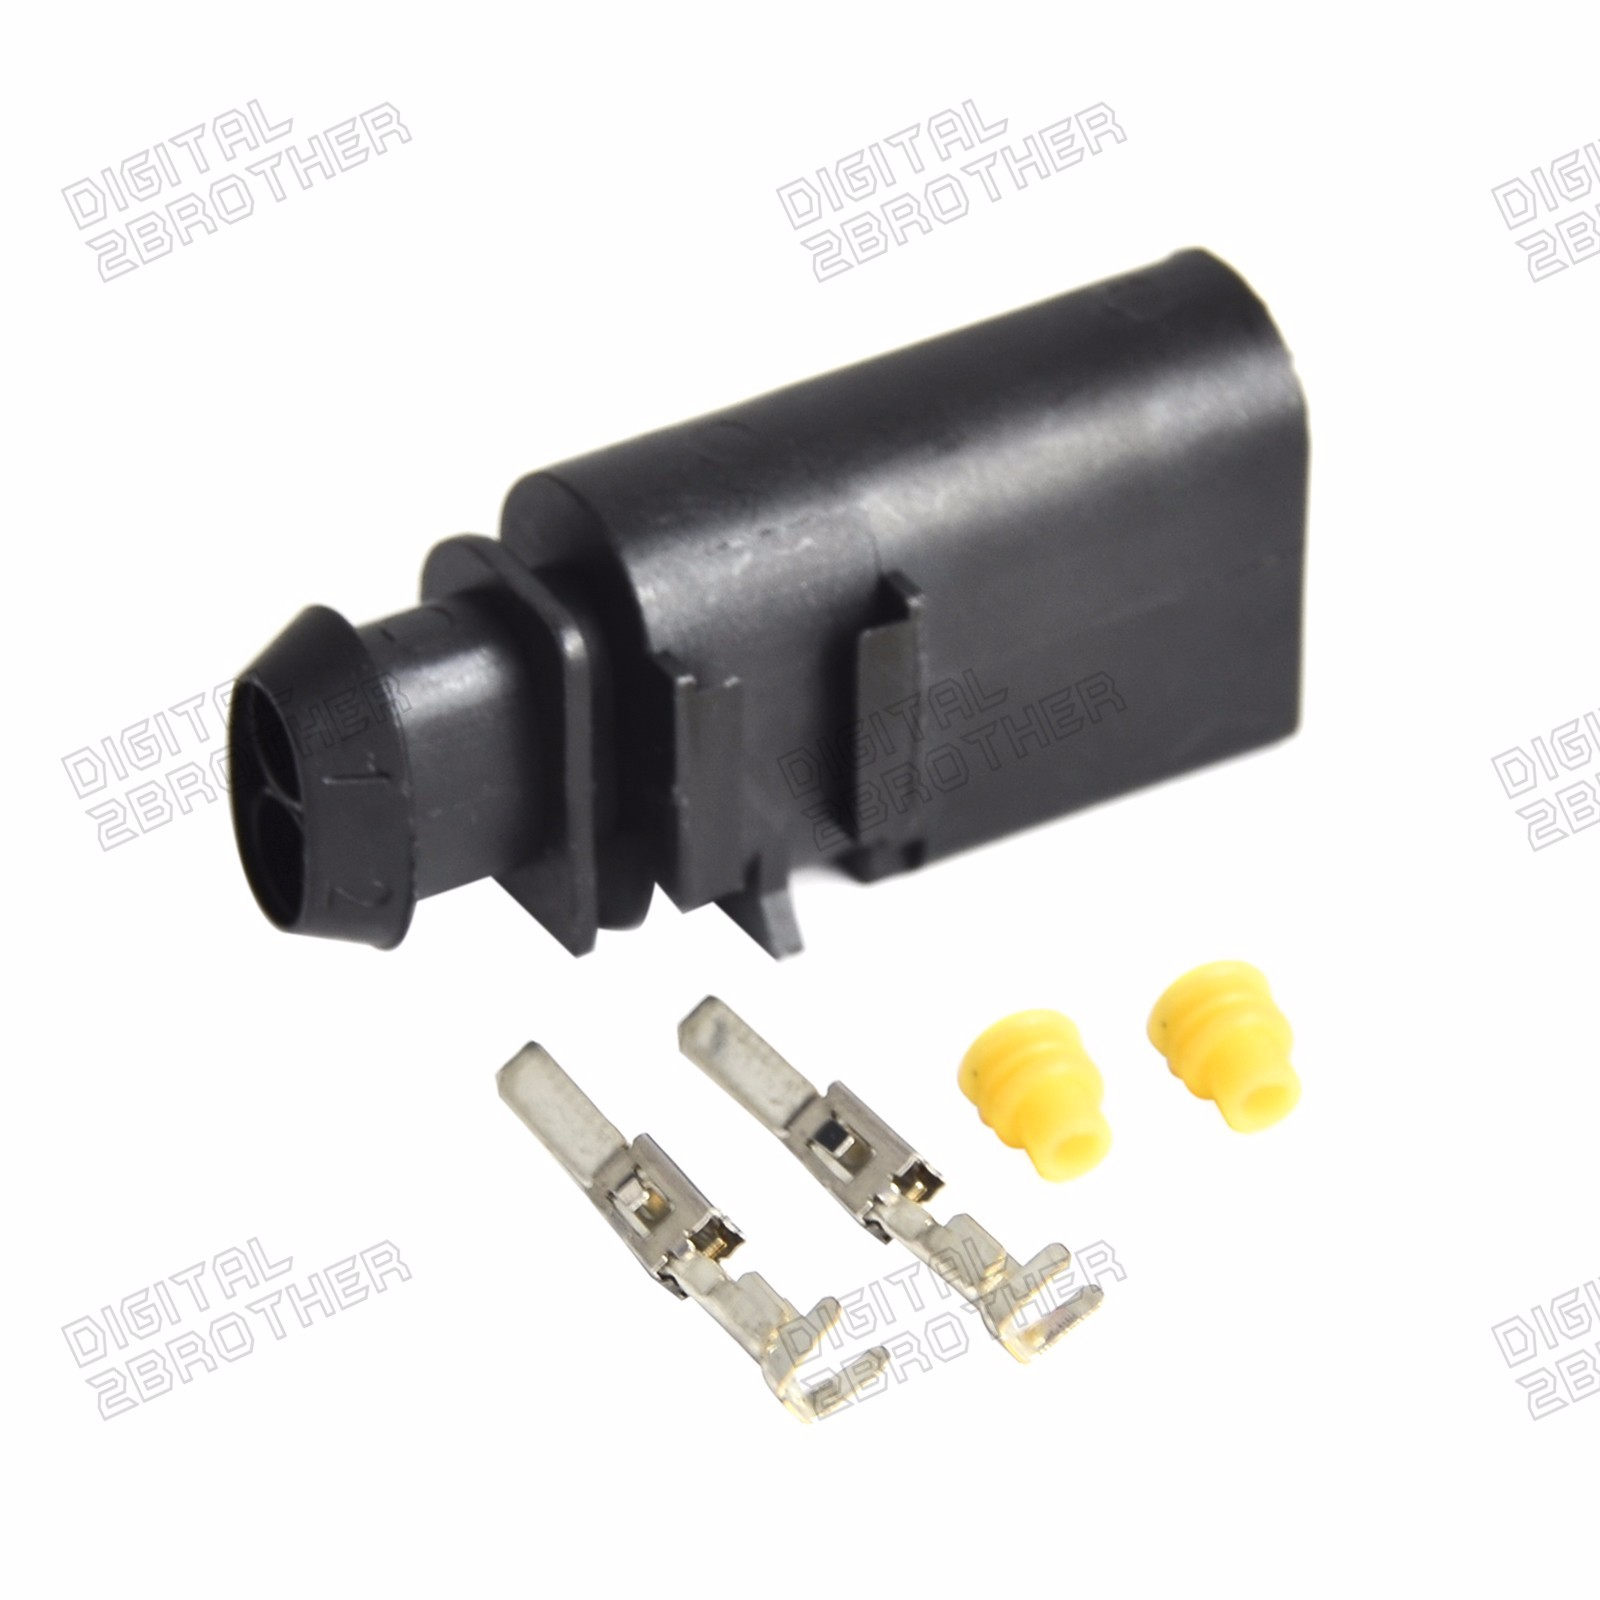 2 Pin Sealed Male Jpt Connector Terminals Boot Kit 1j0 973 802 For Vw Terminal Connectors Audi Vag